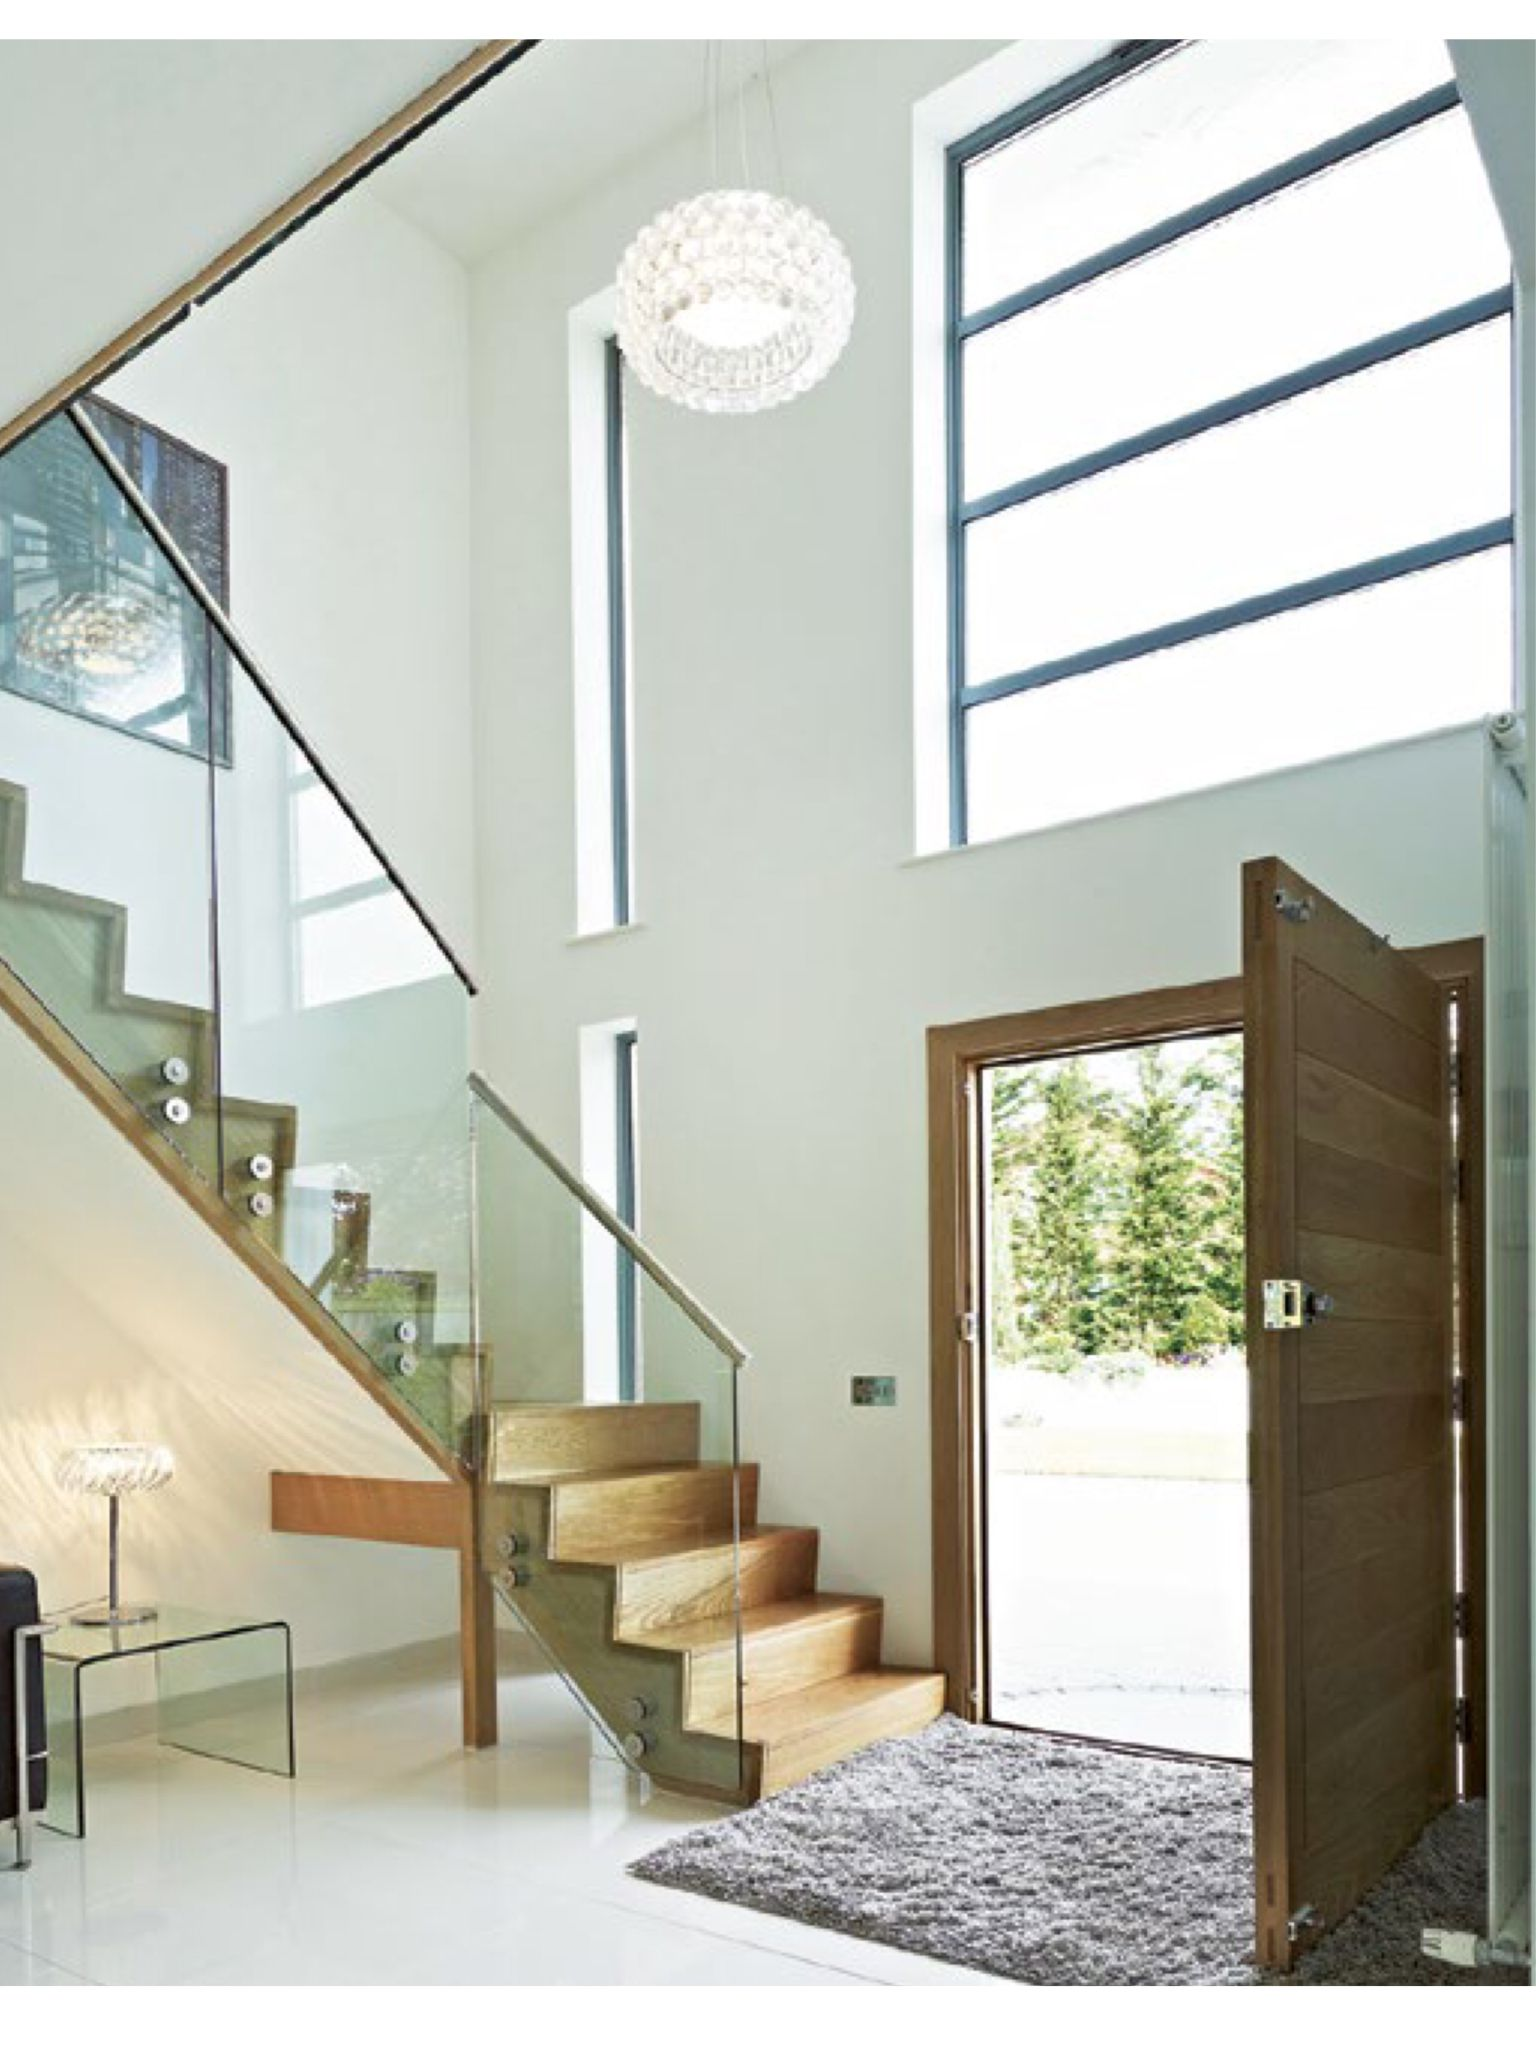 Double height, light entrance | Hall and Stairs | Pinterest ...